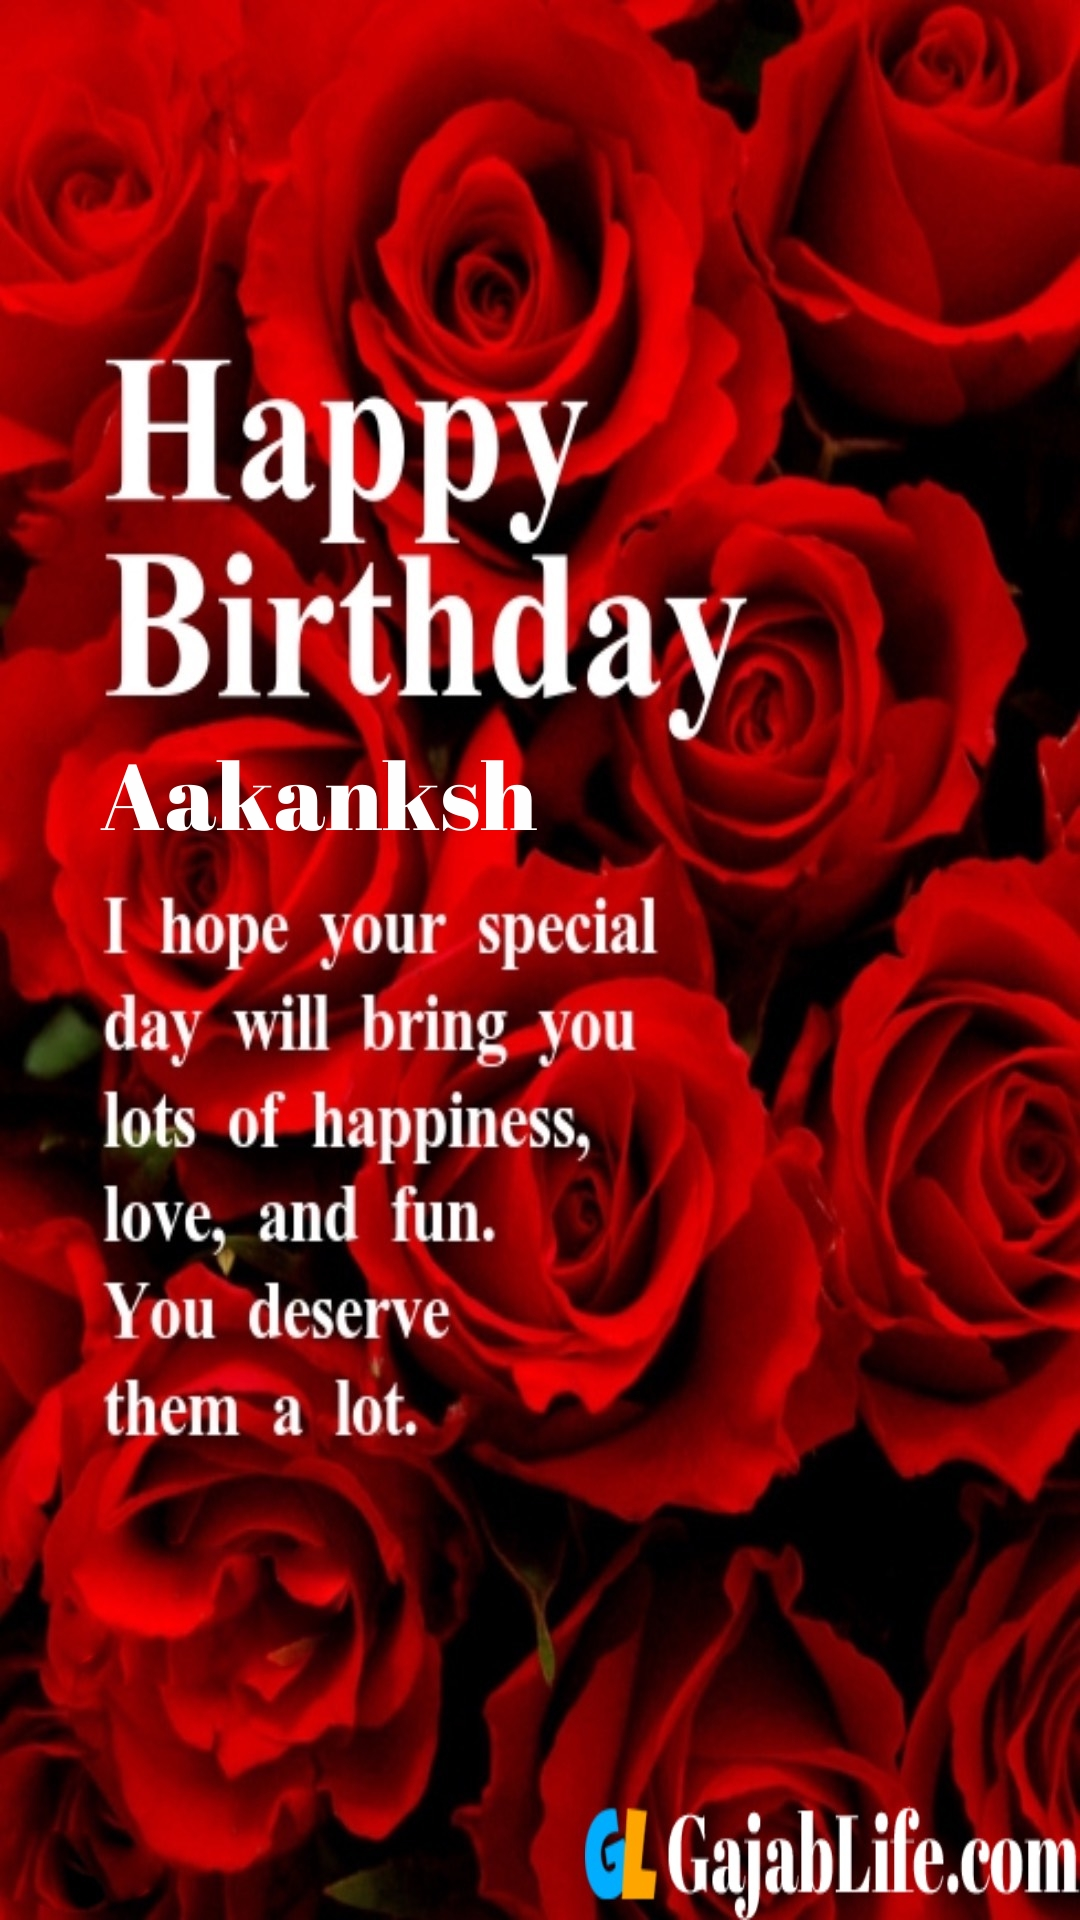 Aakanksh birthday greeting card with rose & love